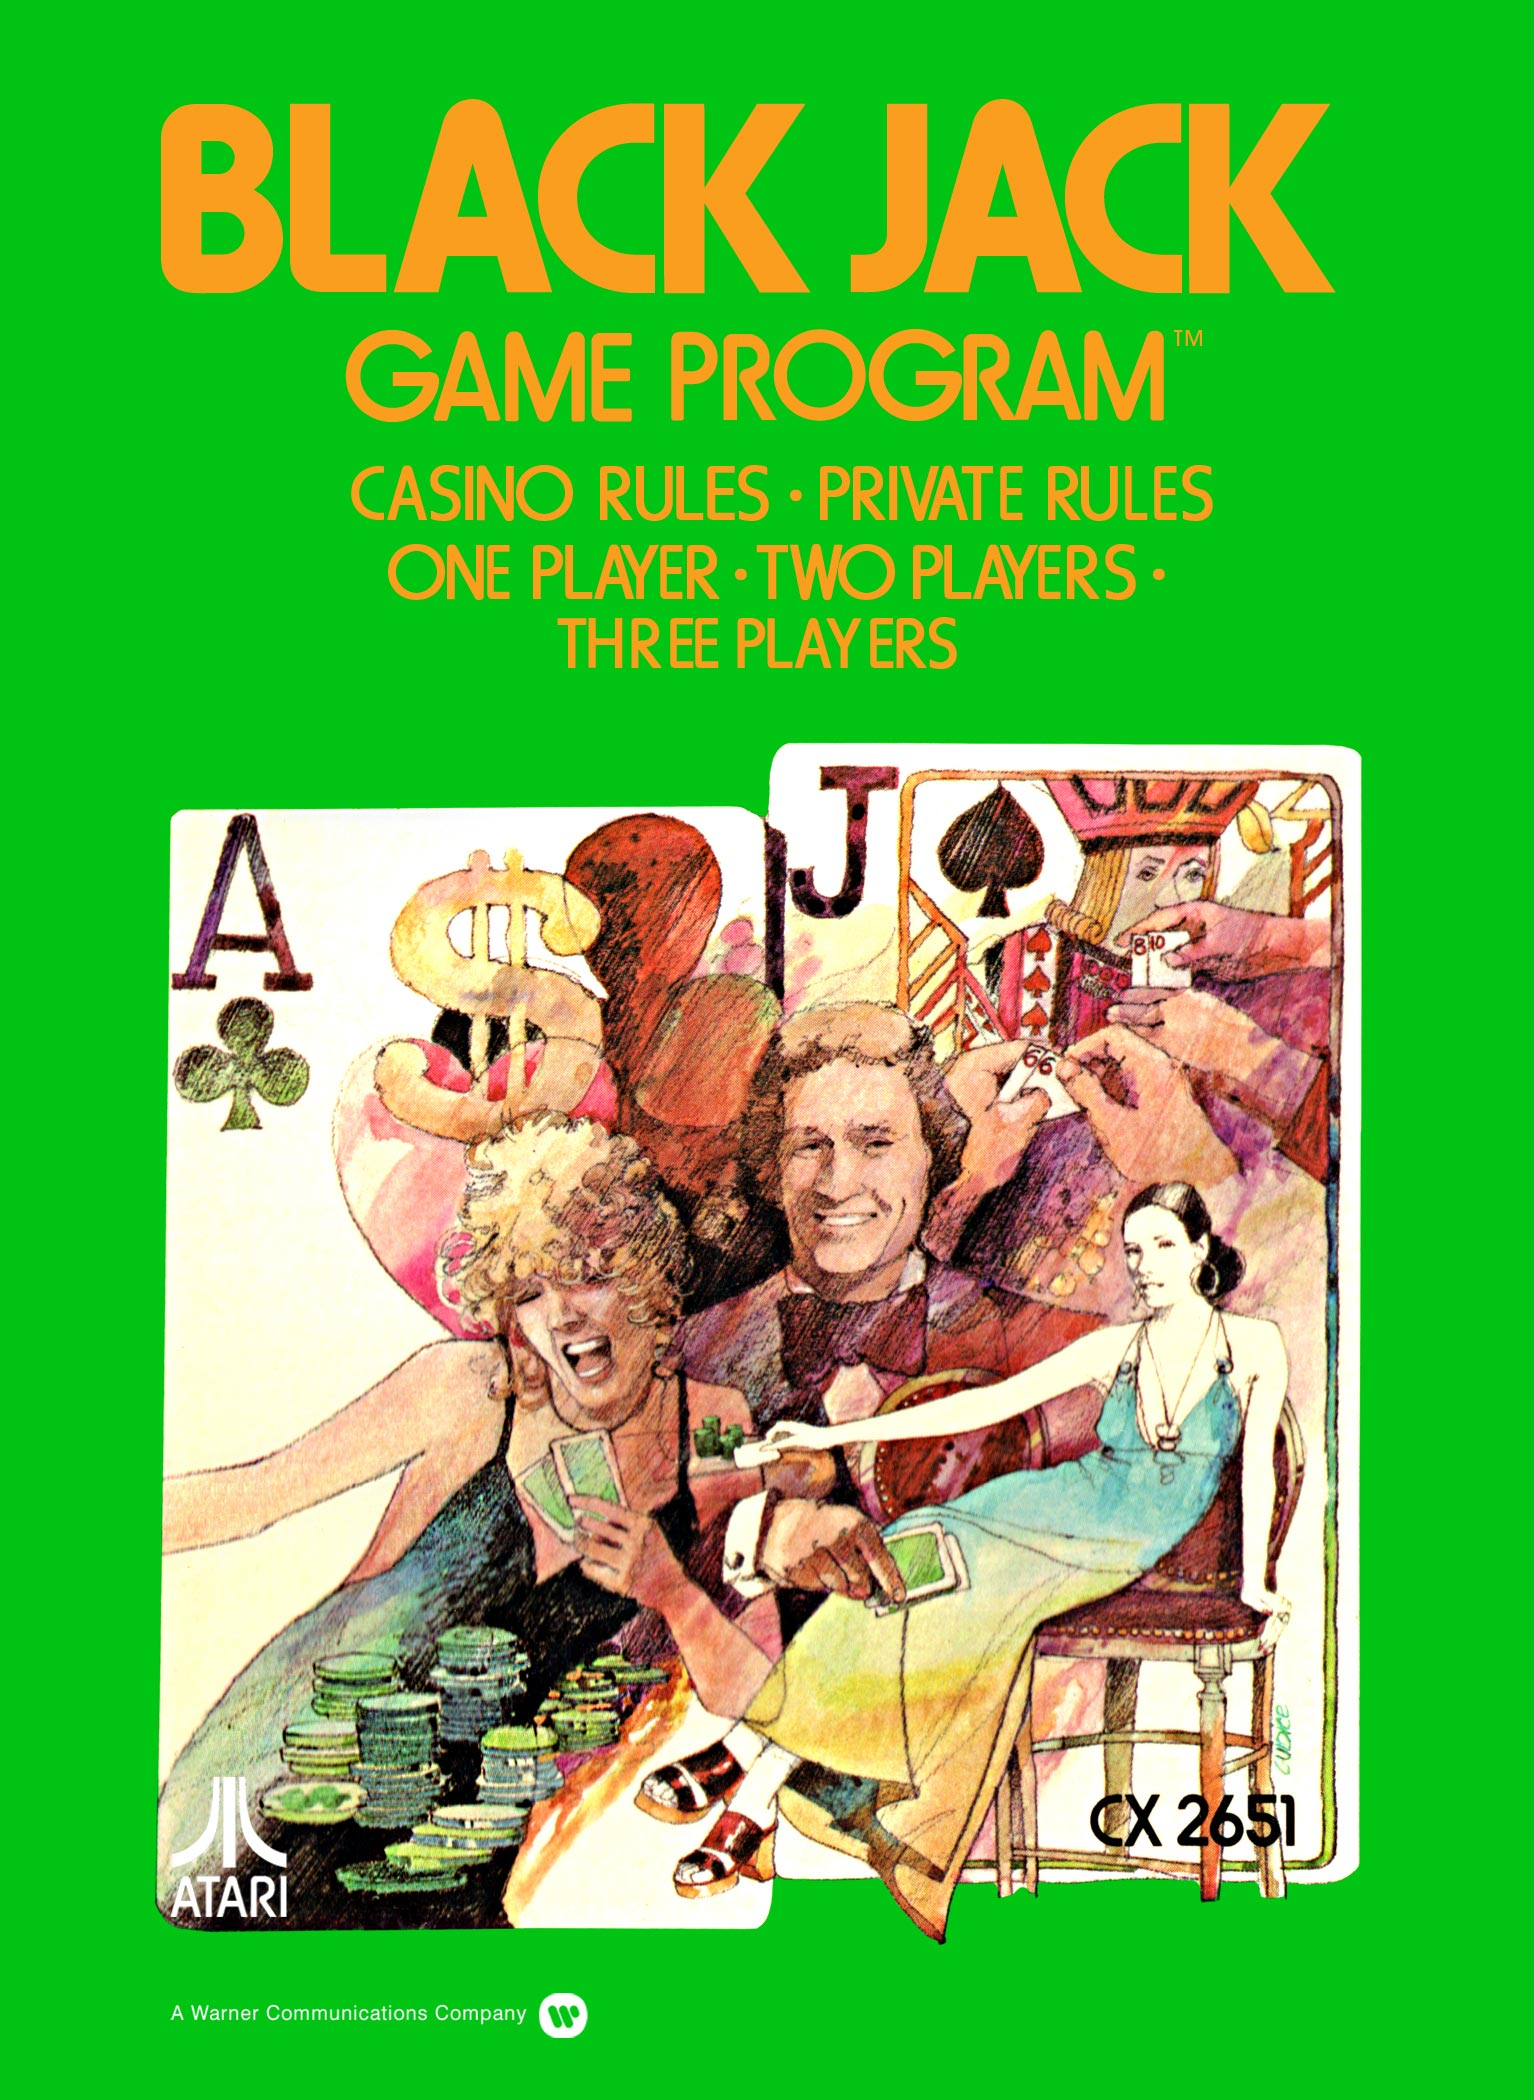 Blackjack, a gambling home video game for the Atari VCS game console